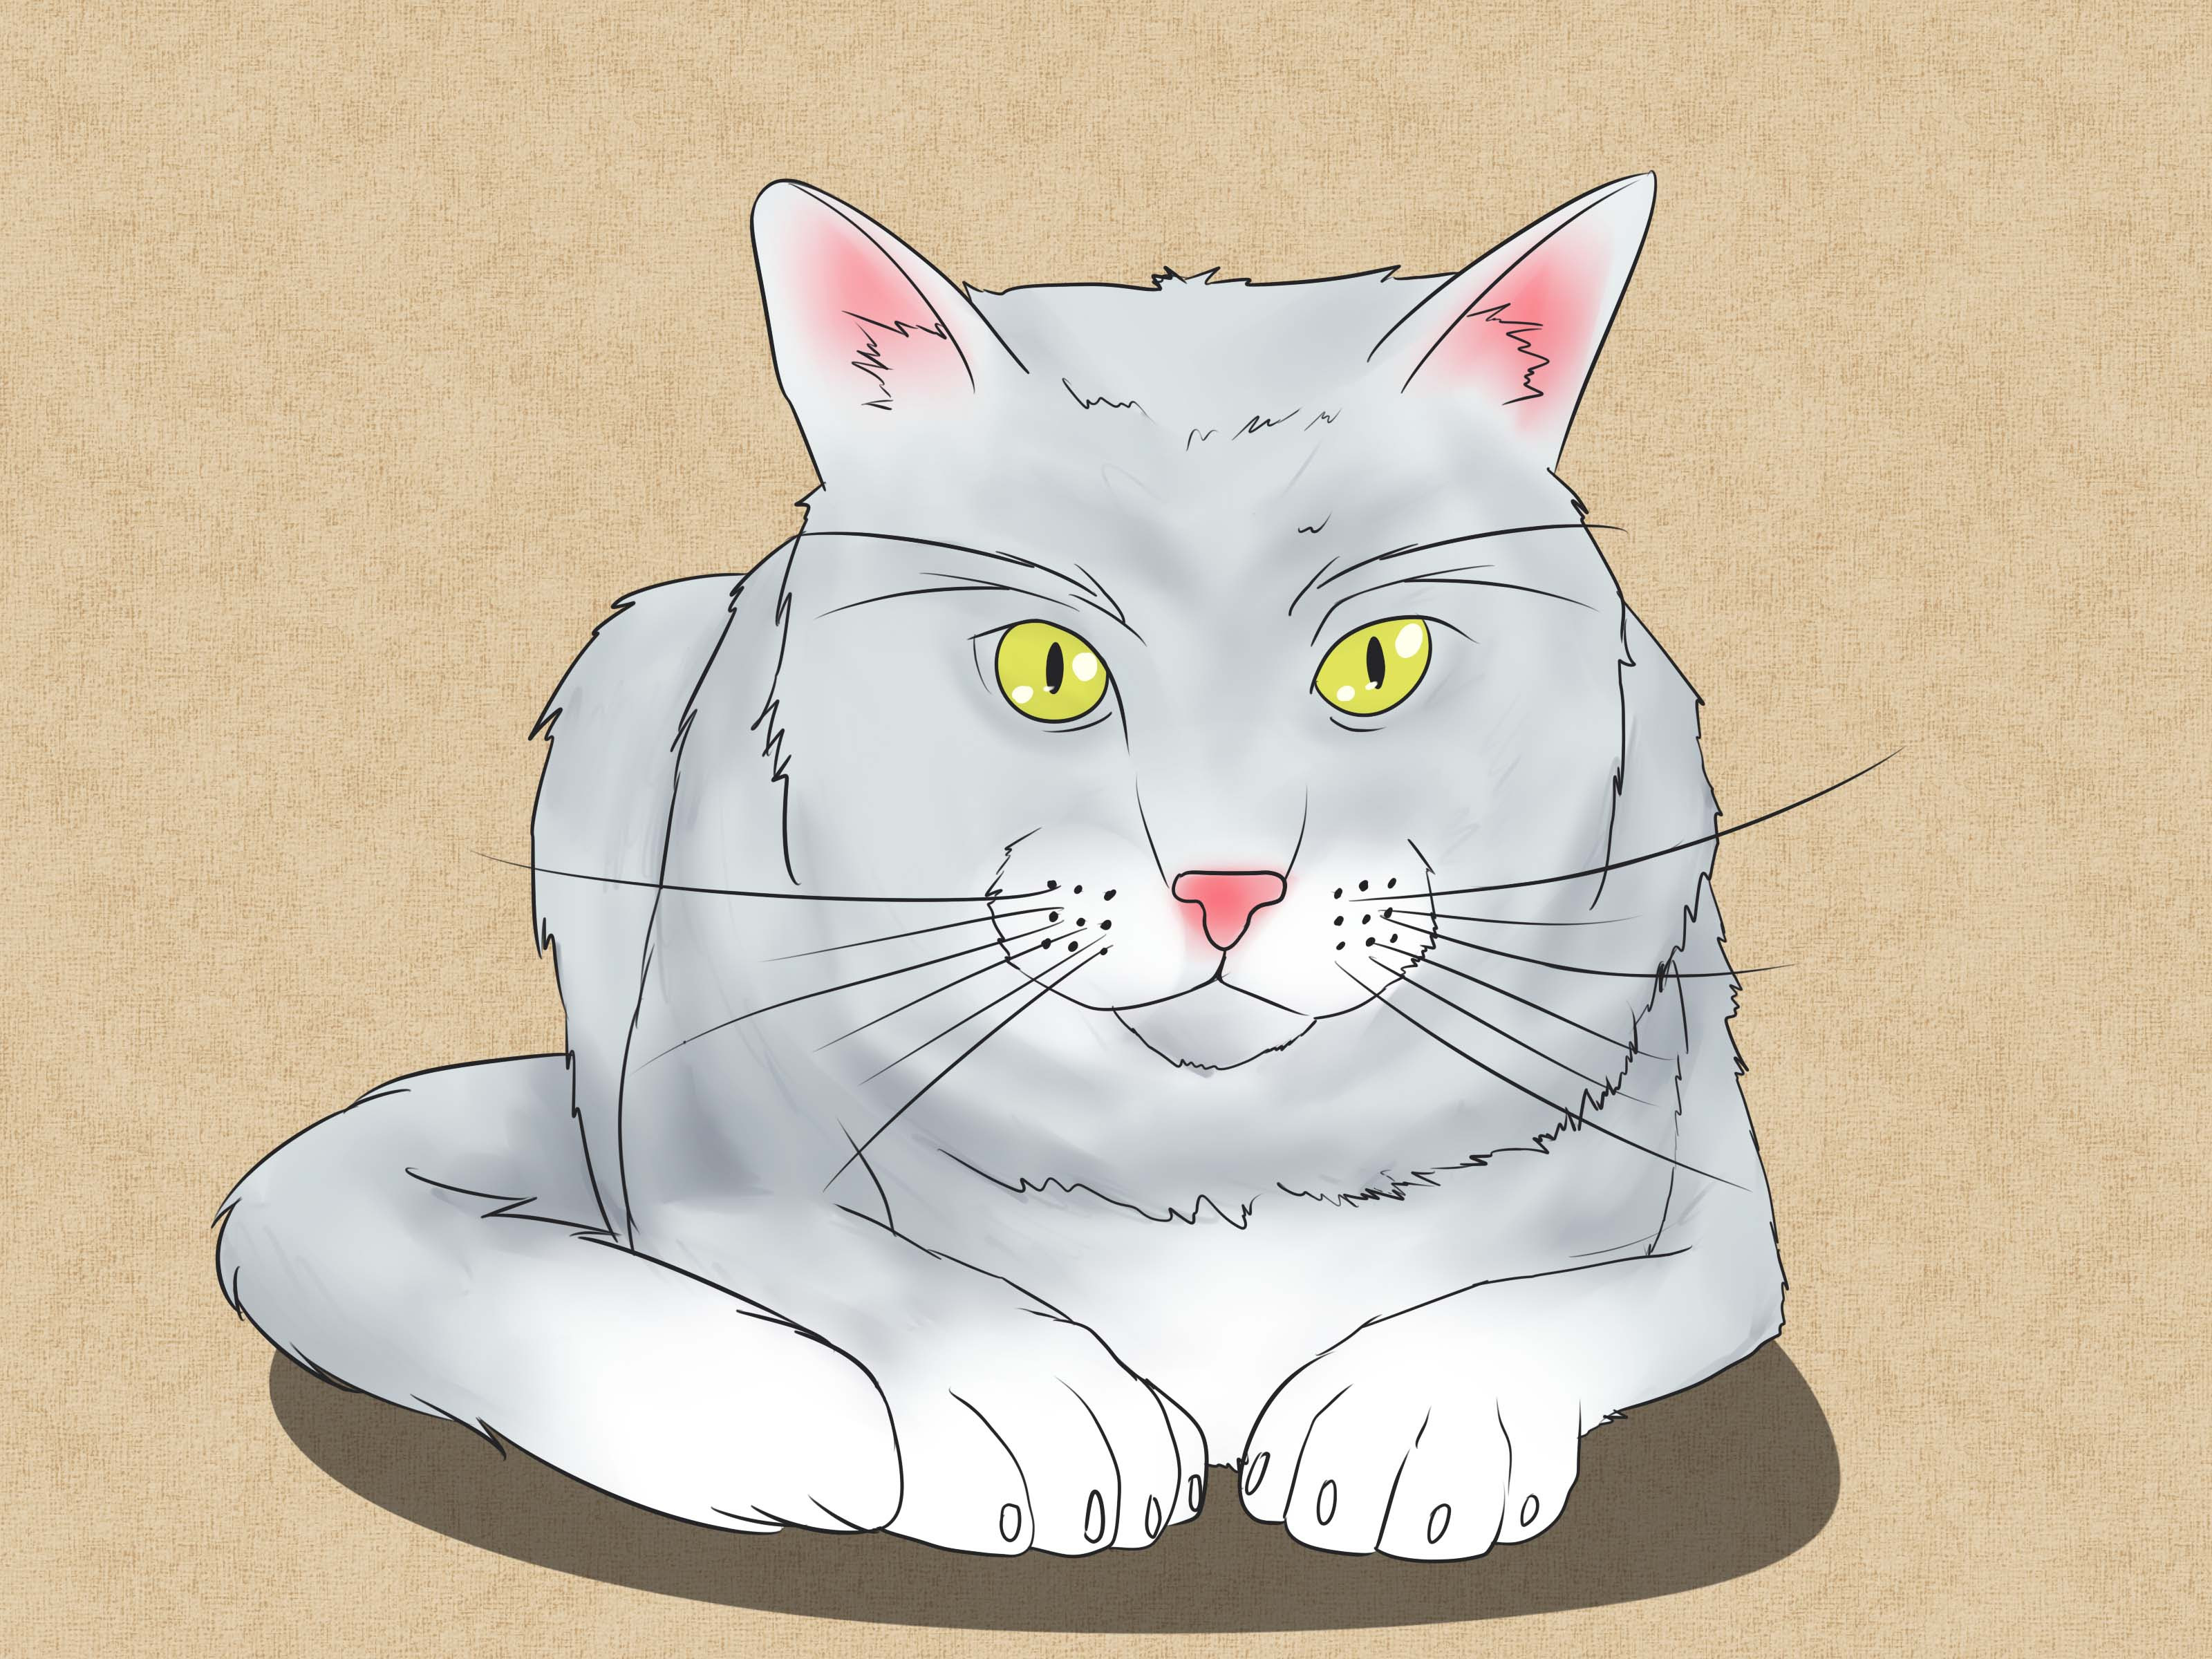 The 4 Best Ways to Draw a Cat - wikiHow